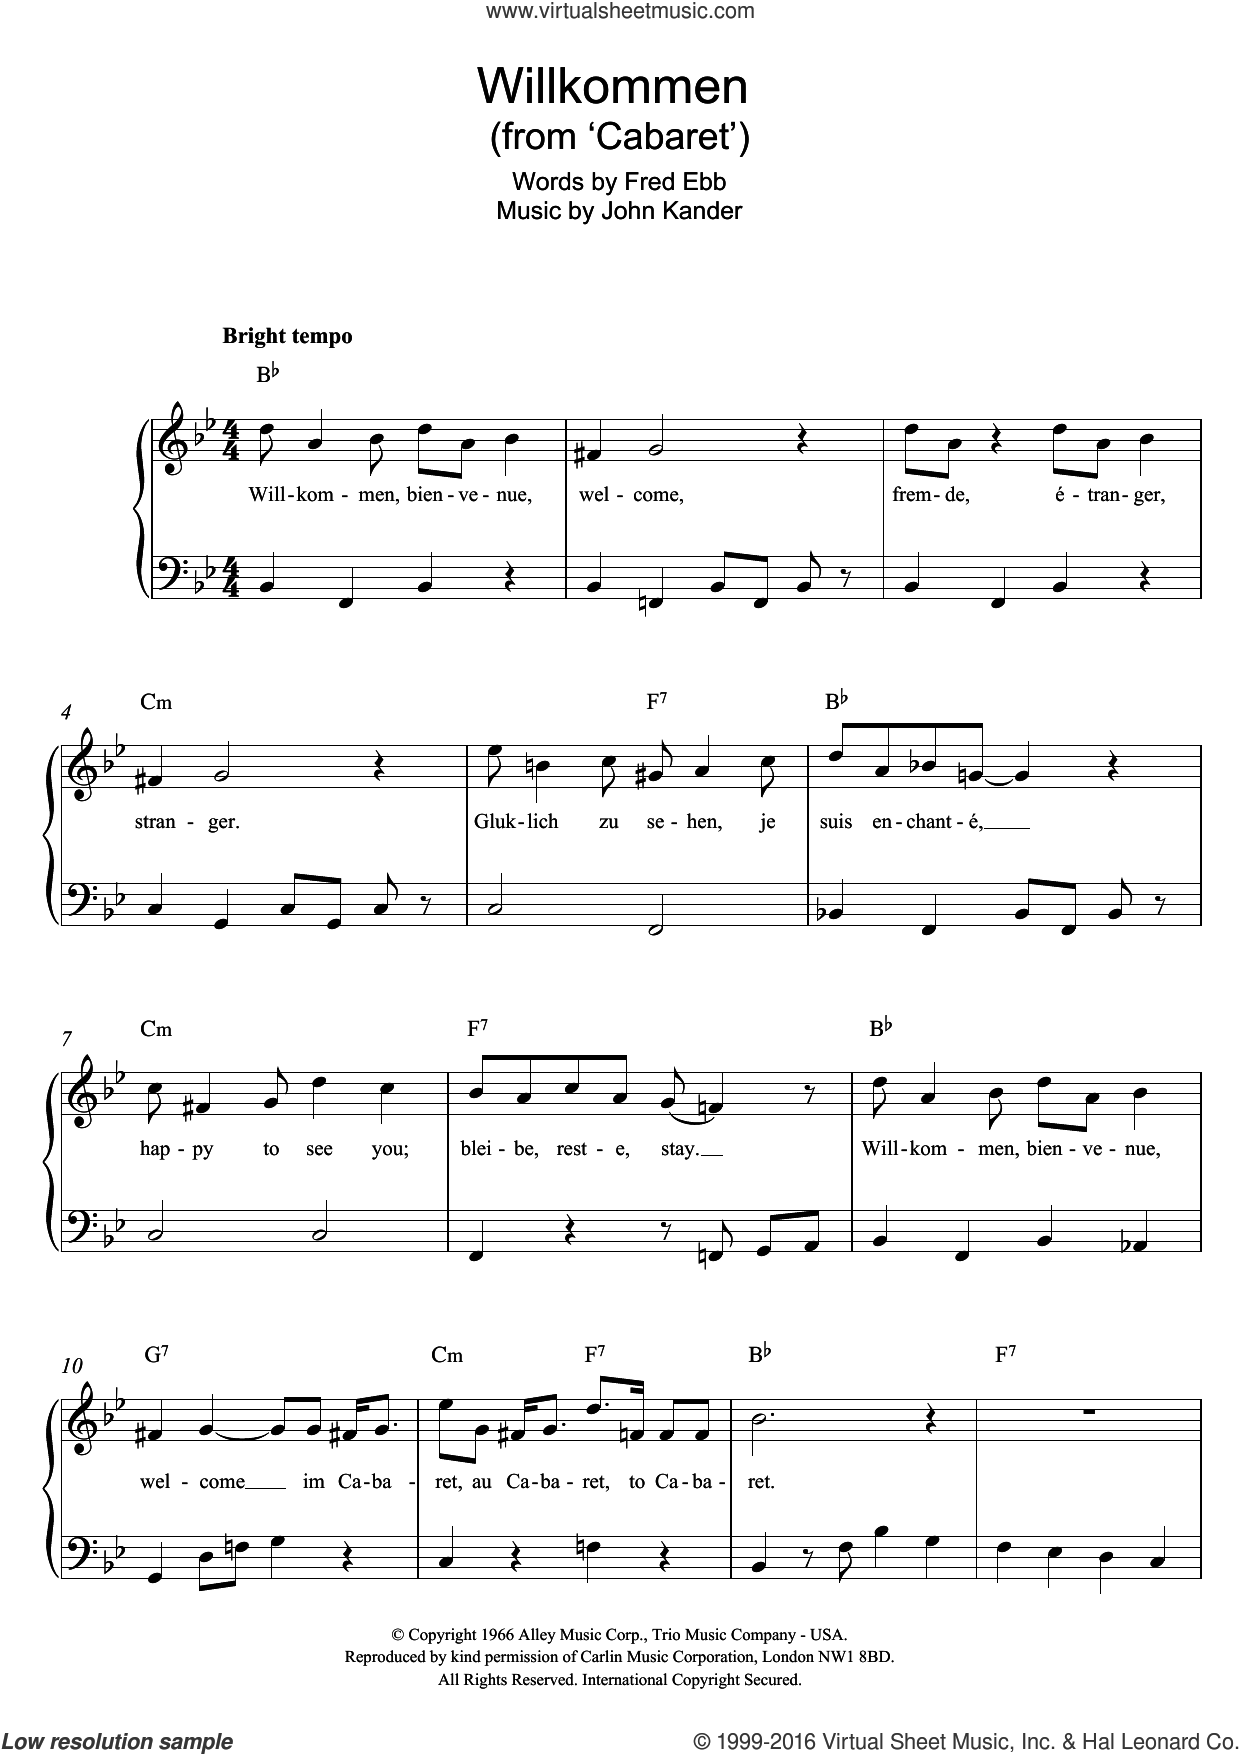 Willkommen (from Cabaret) sheet music for piano solo by Kander & Ebb, John Kander and Fred Ebb, easy skill level